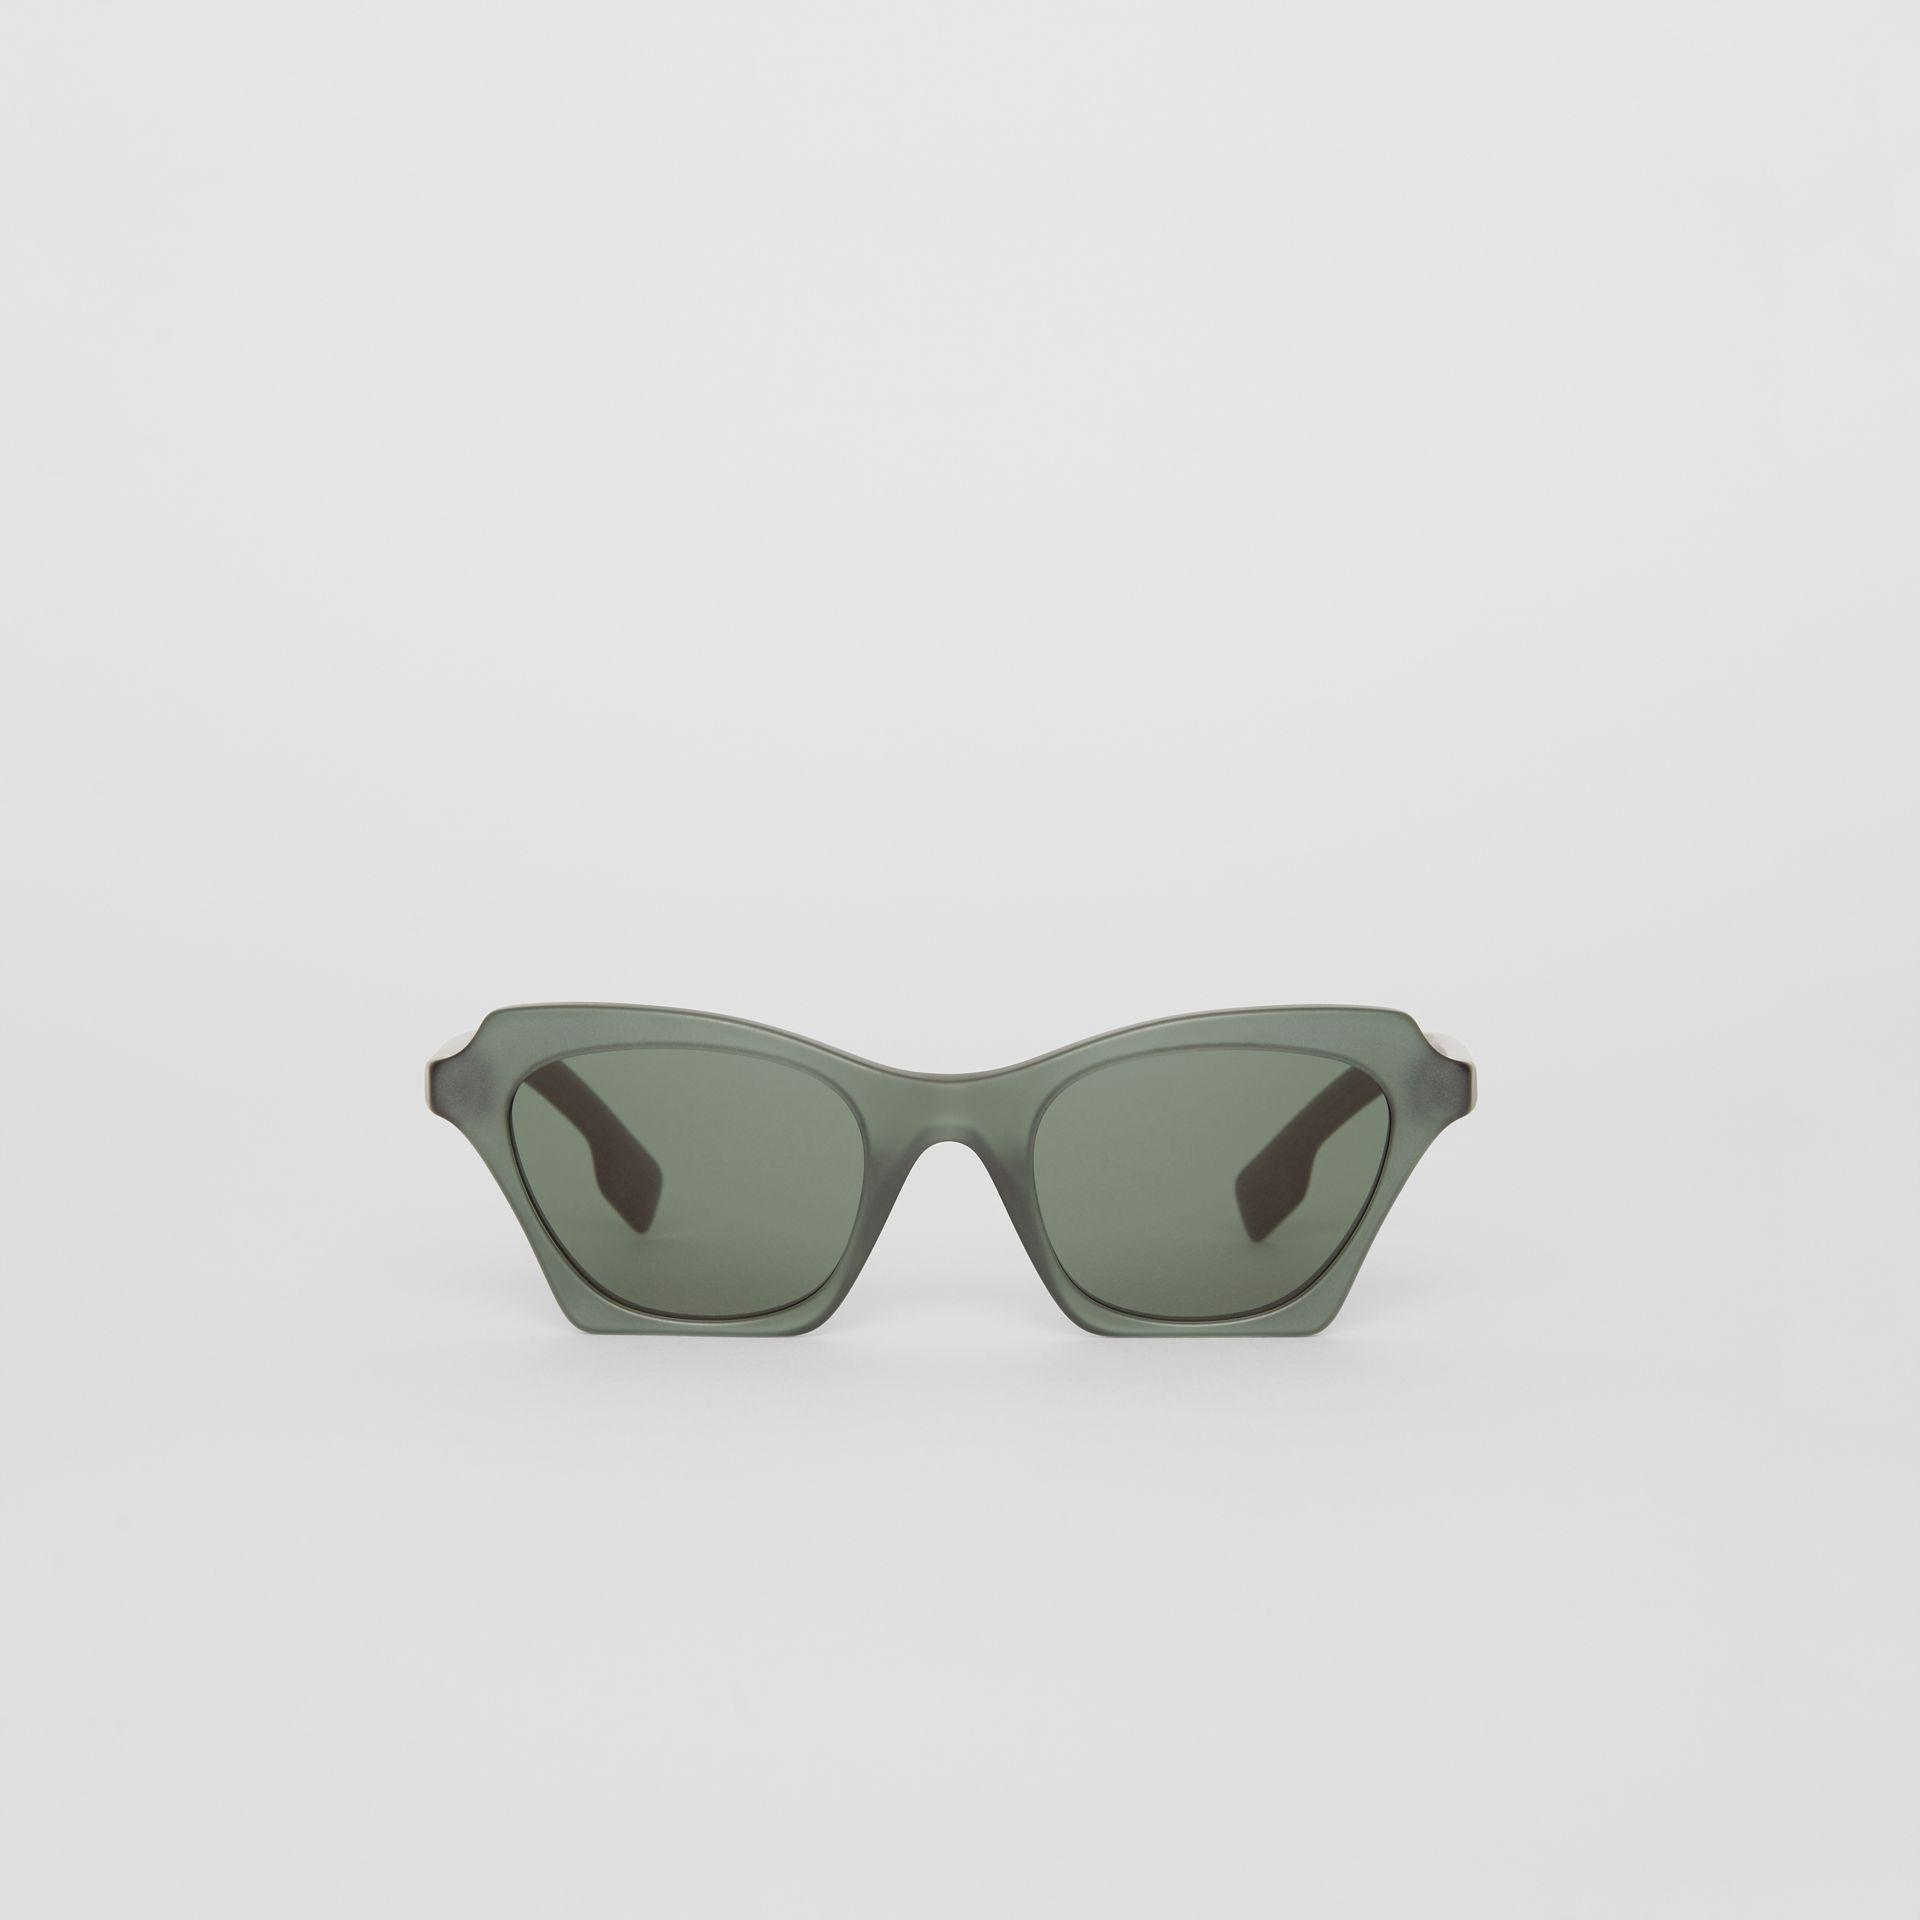 a5cea2ecf2c9 Burberry Butterfly Frame Sunglasses in Green - Lyst